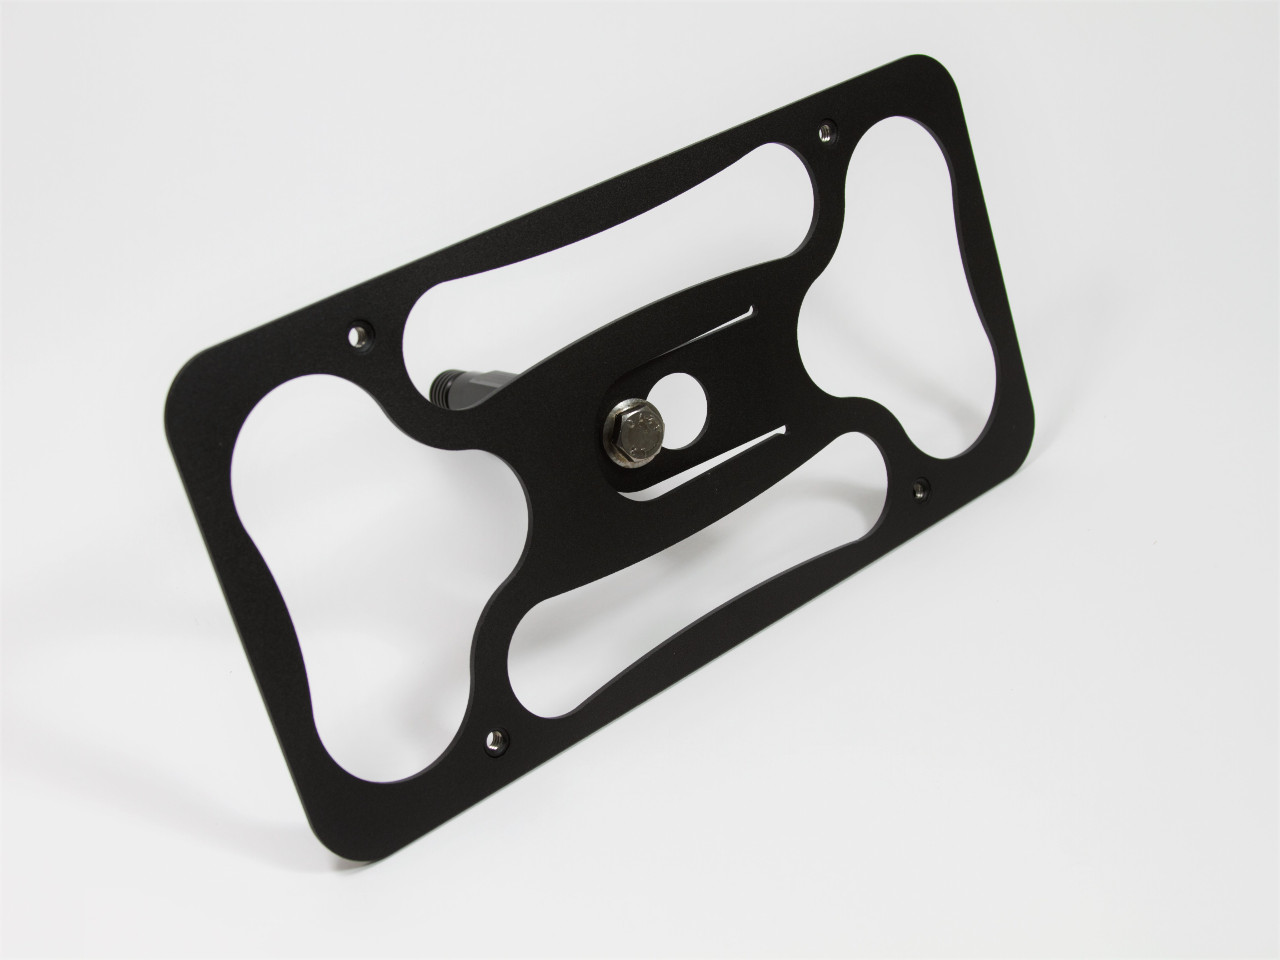 Front view of The Platypus License Plate Mount for 2007-2011 BMW 328i Sedan